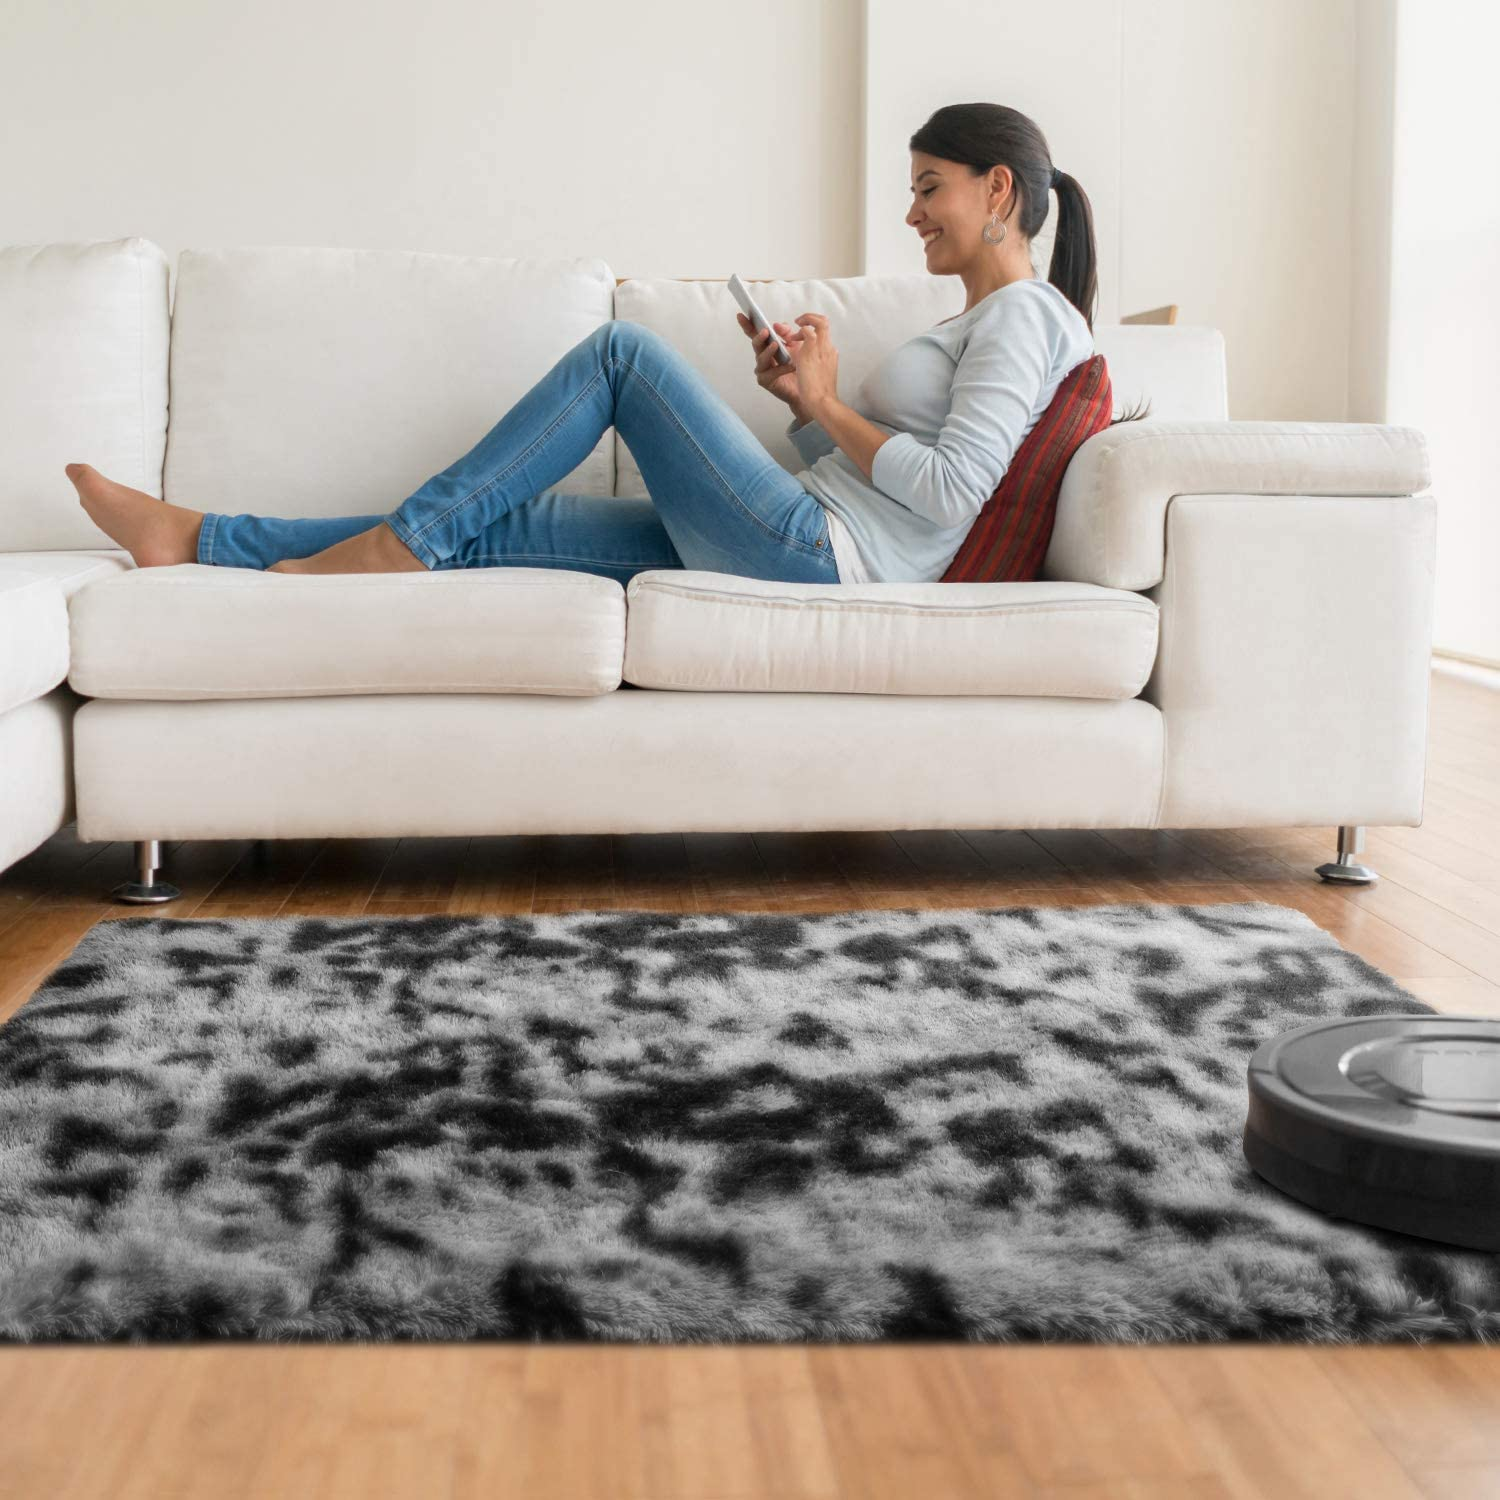 Girls Room and Nursery 4x5.3 Feet Black//Grey Luxury Shag Rug Faux Fur Non-Slip Tie-Dyed Floor Carpet for Bedroom Baby Room Kids Room Ophanie Ultra Soft Fluffy Area Rugs for Living Room